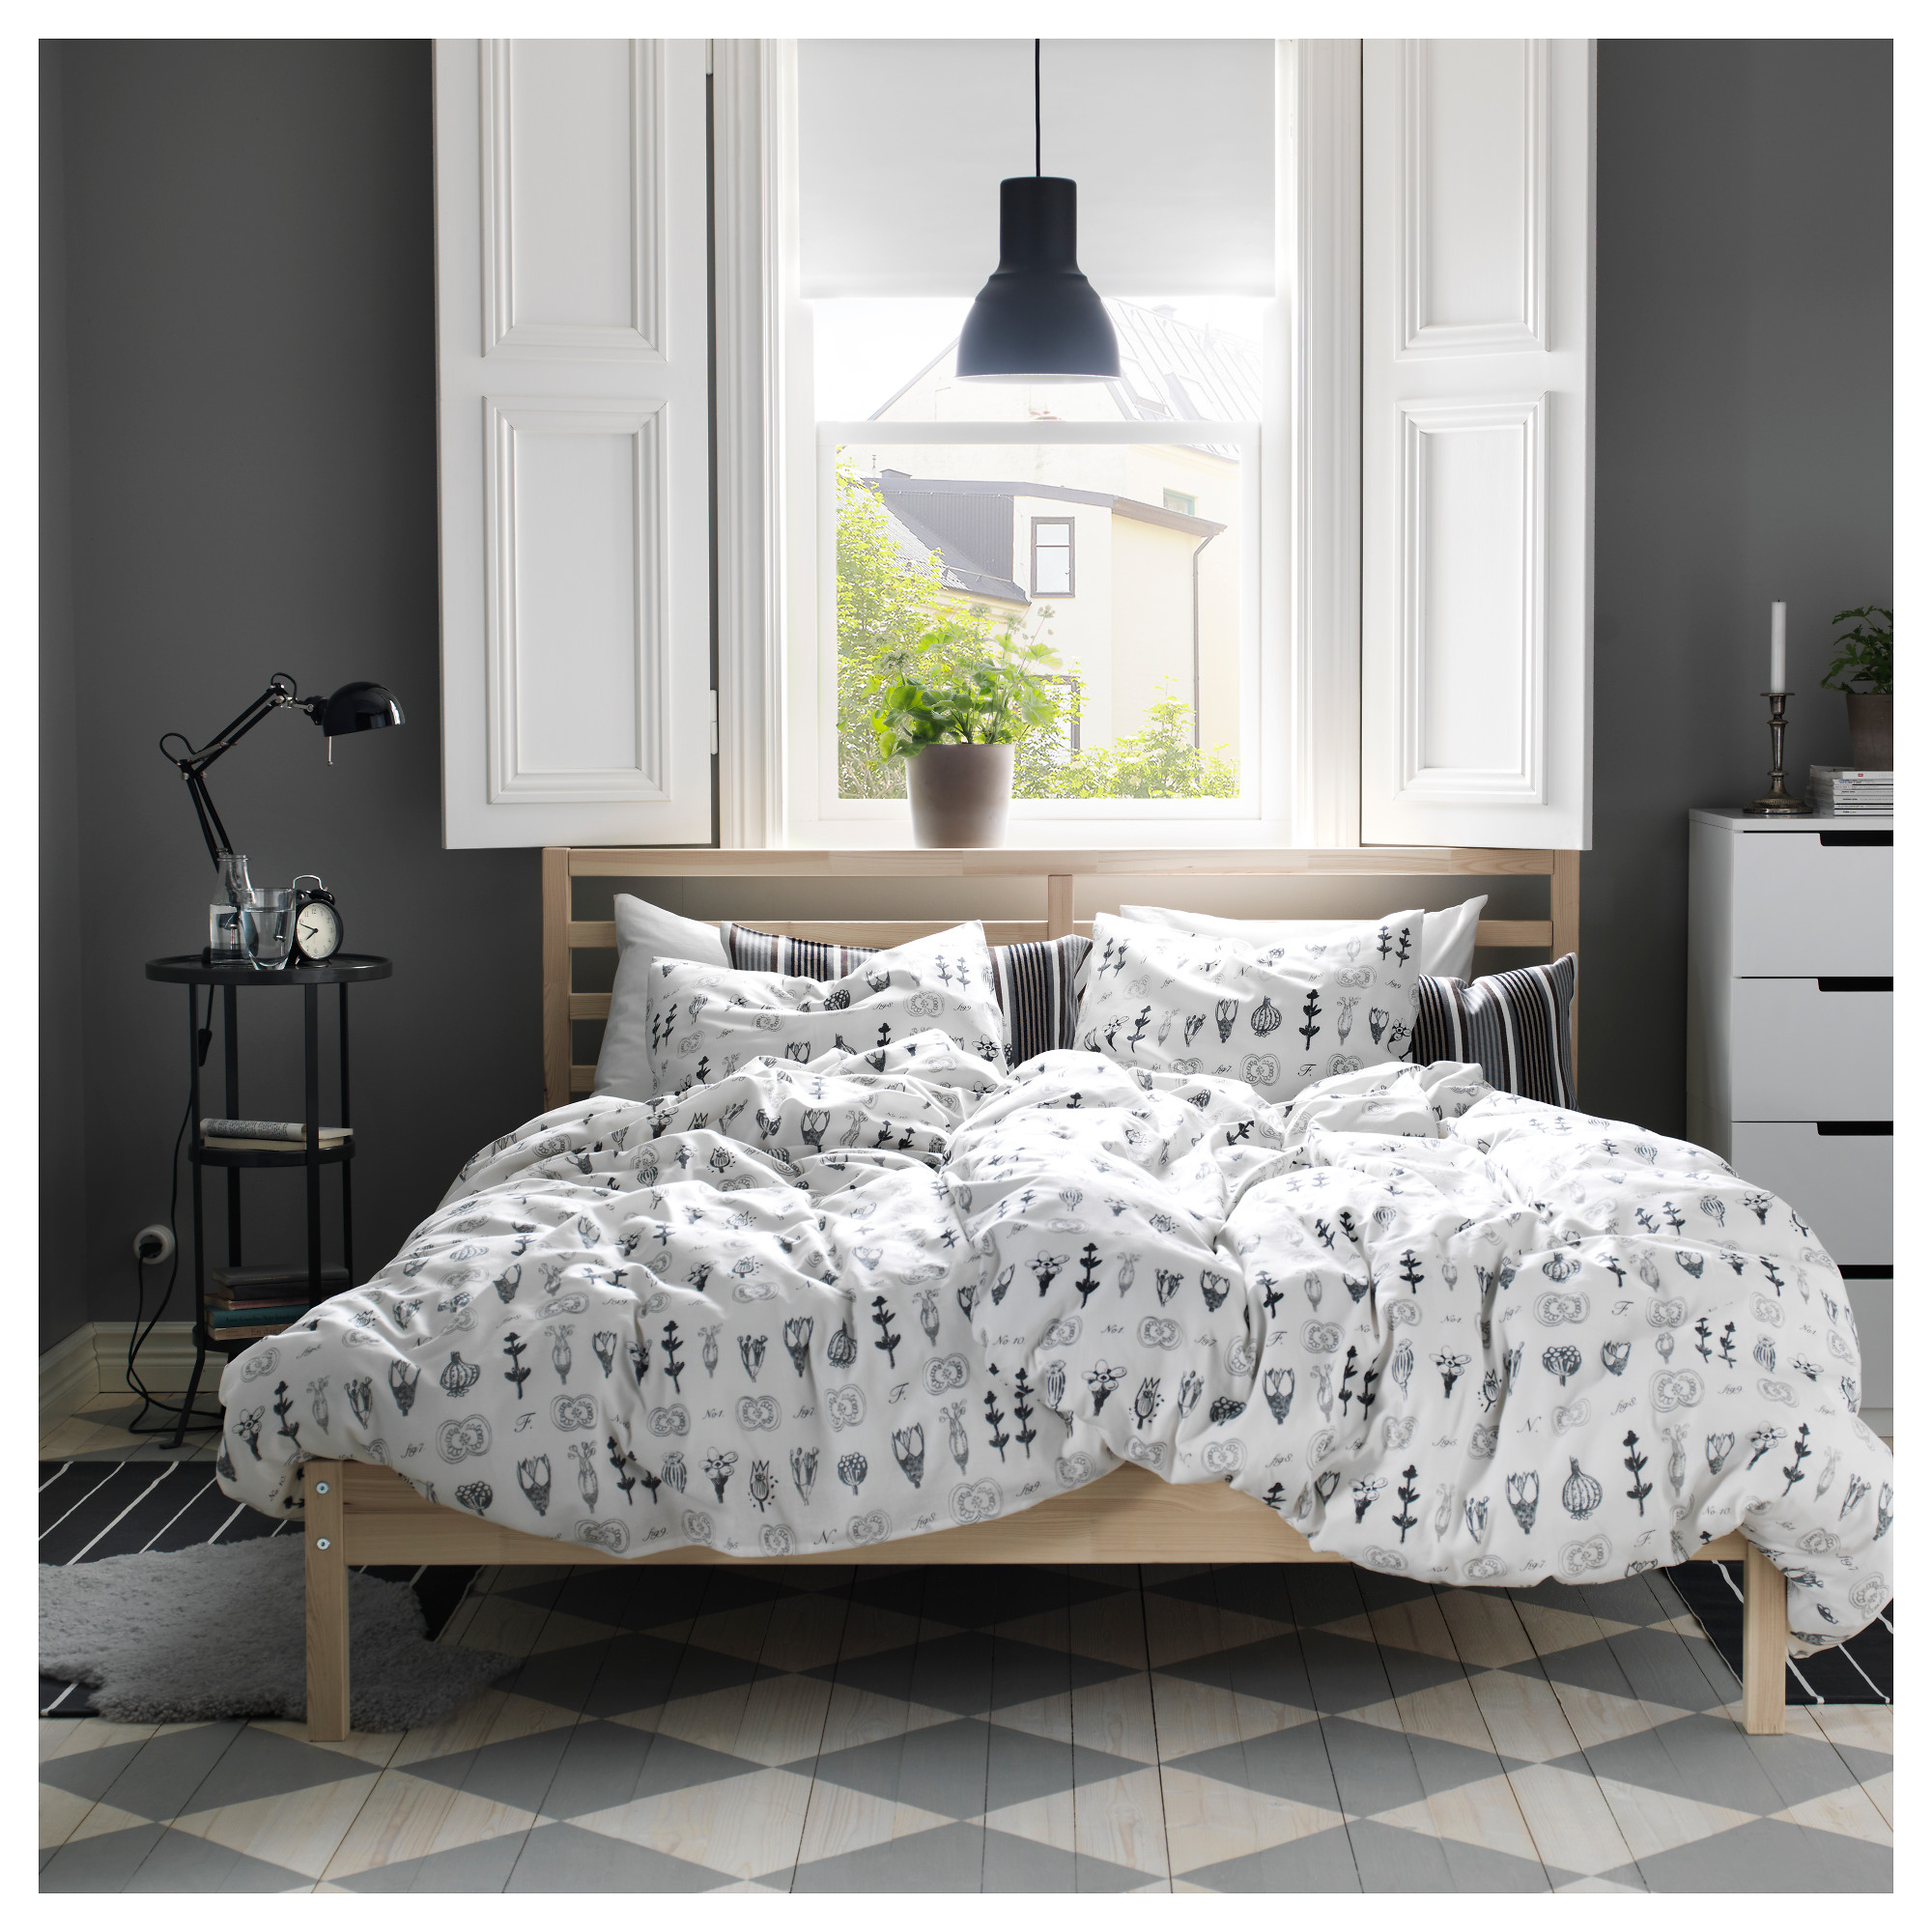 tarva bed frame queen lury ikea - New Bed Frame